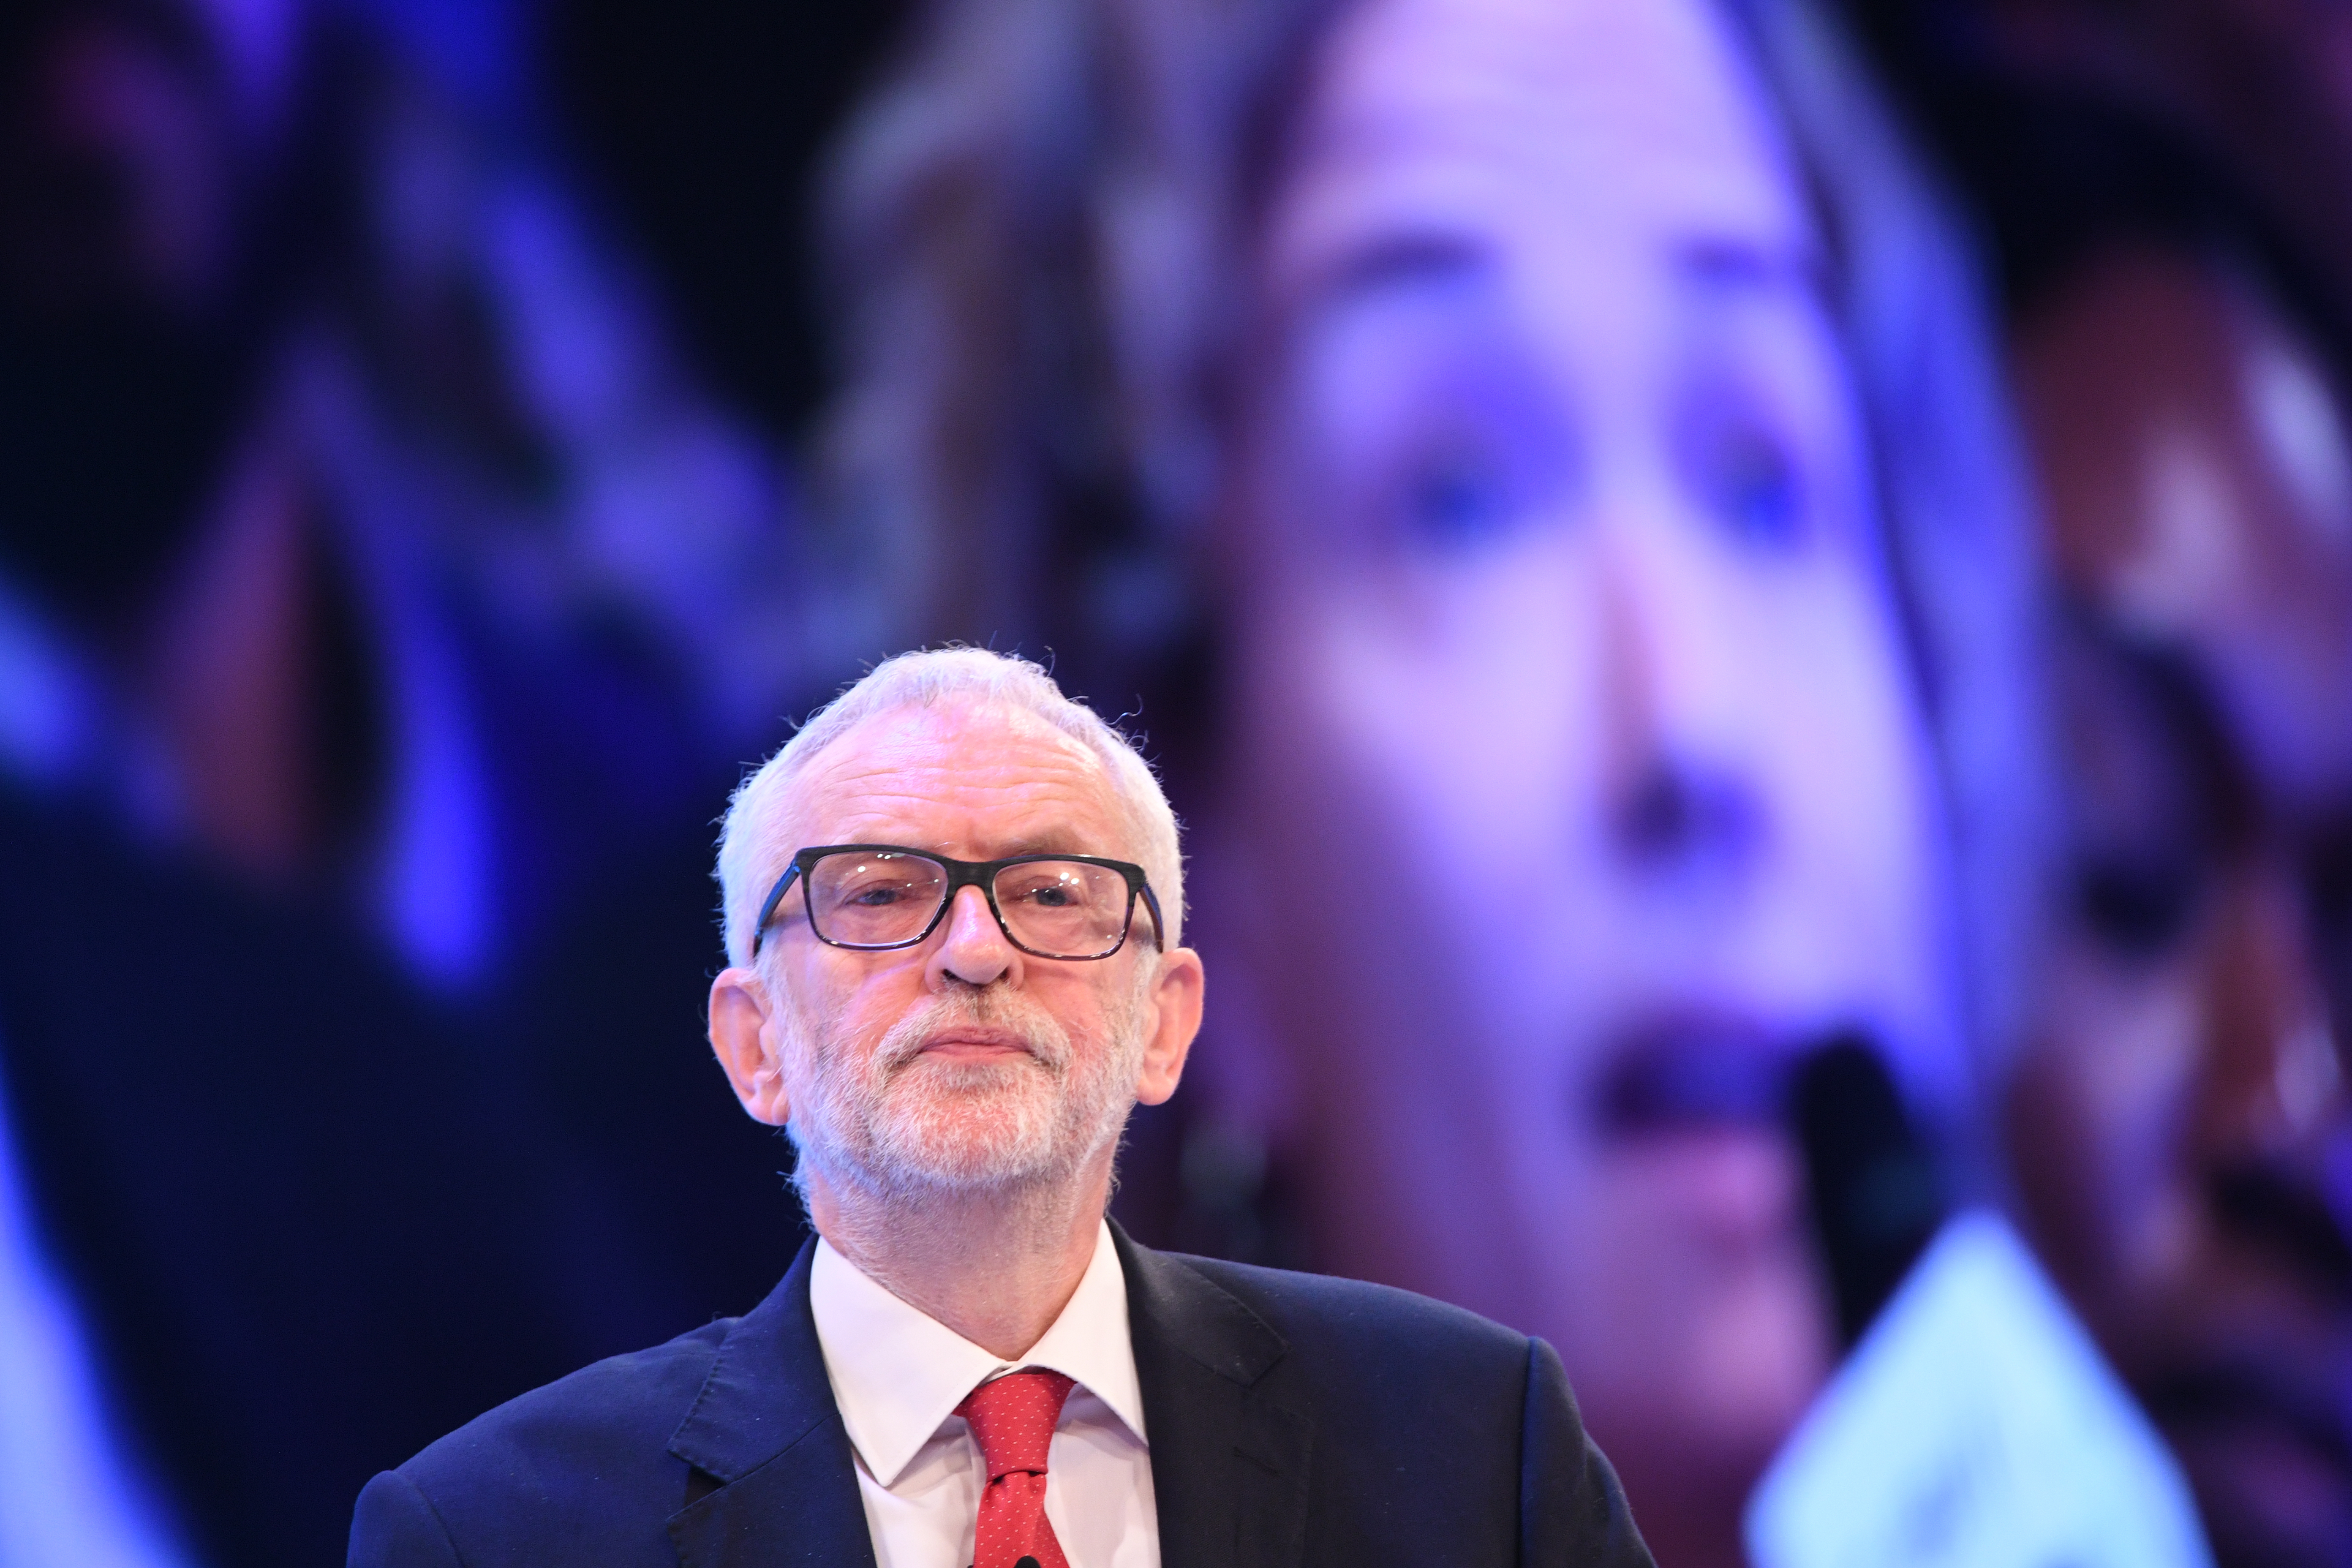 Labour leader Jeremy Corbyn at the CBI annual conference at the InterContinental Hotel in London.